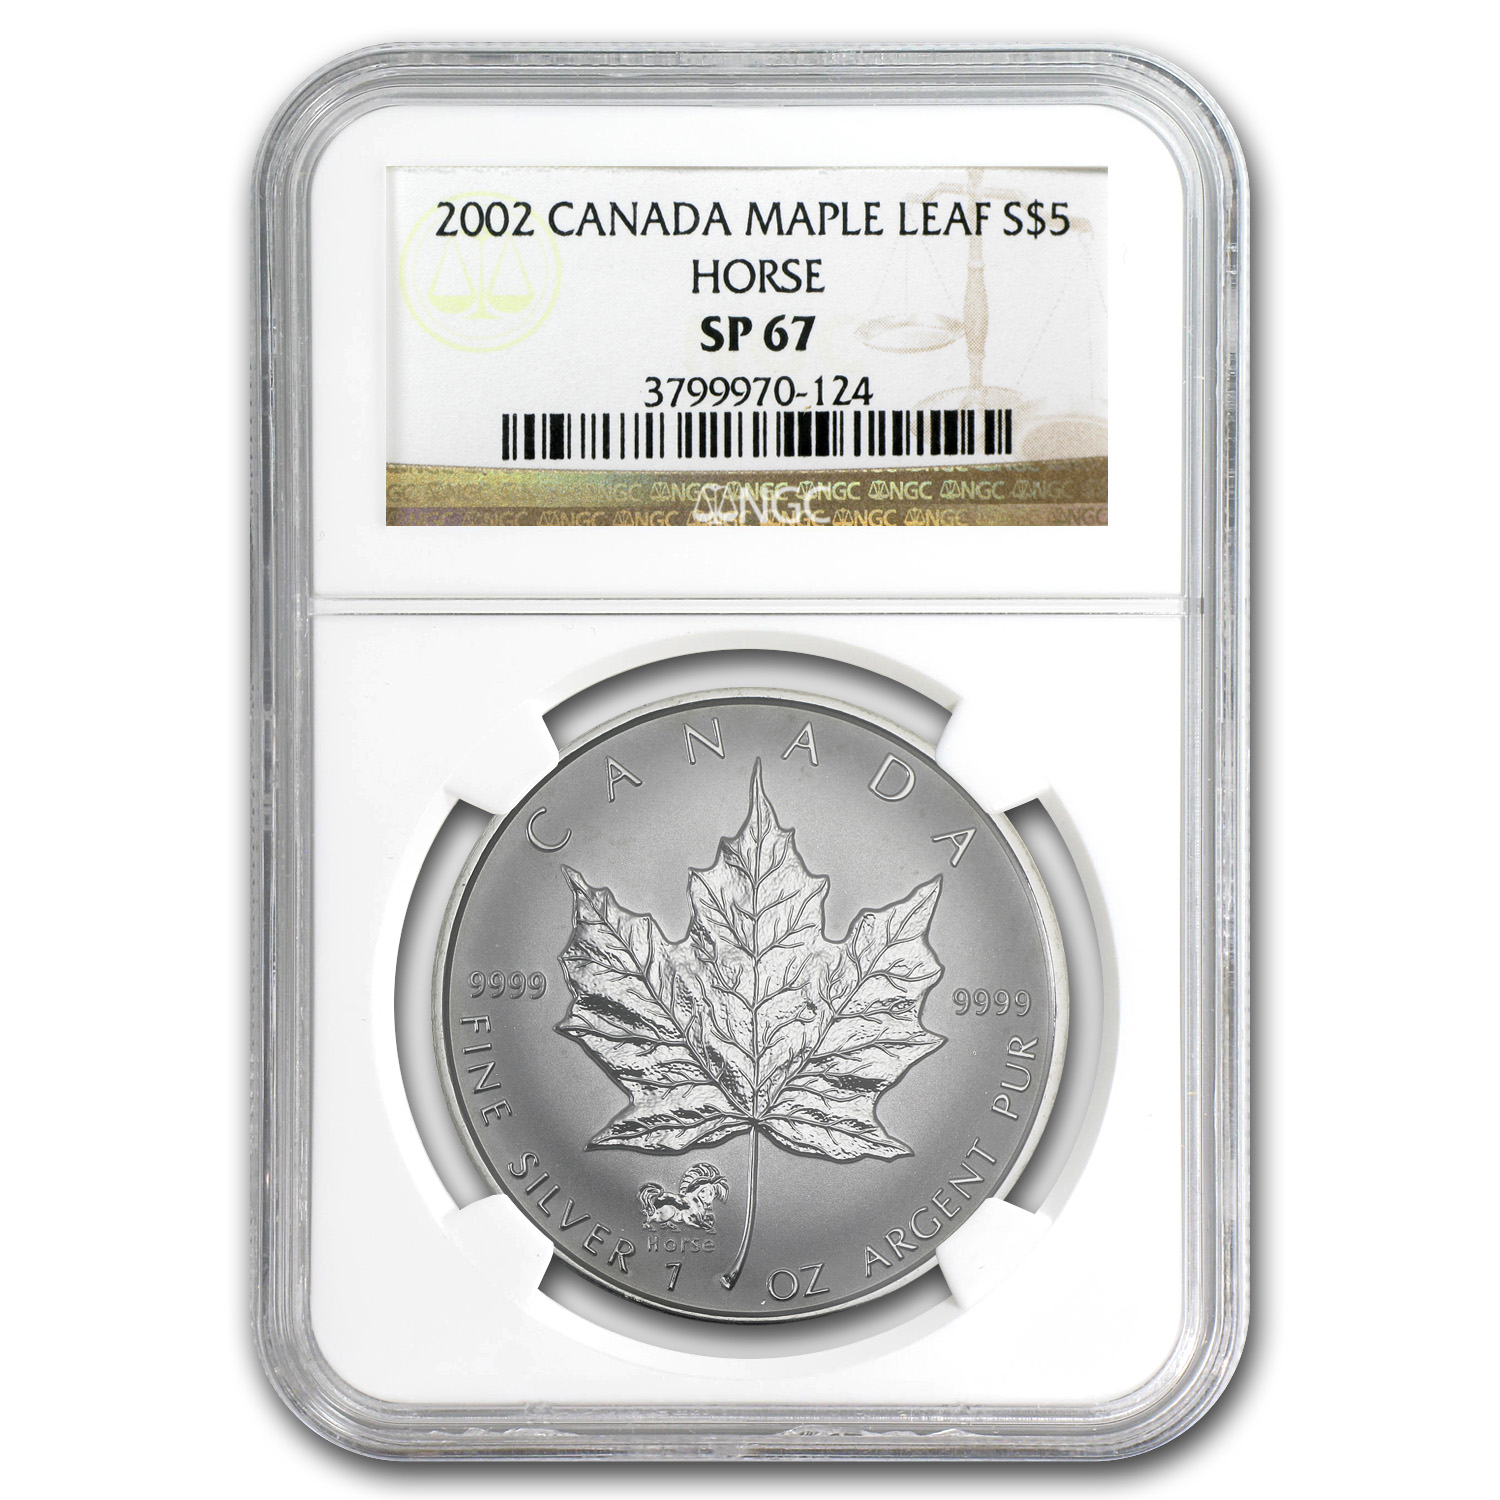 2002 Canada 1 oz Silver Maple Leaf Horse Privy SP-67 NGC